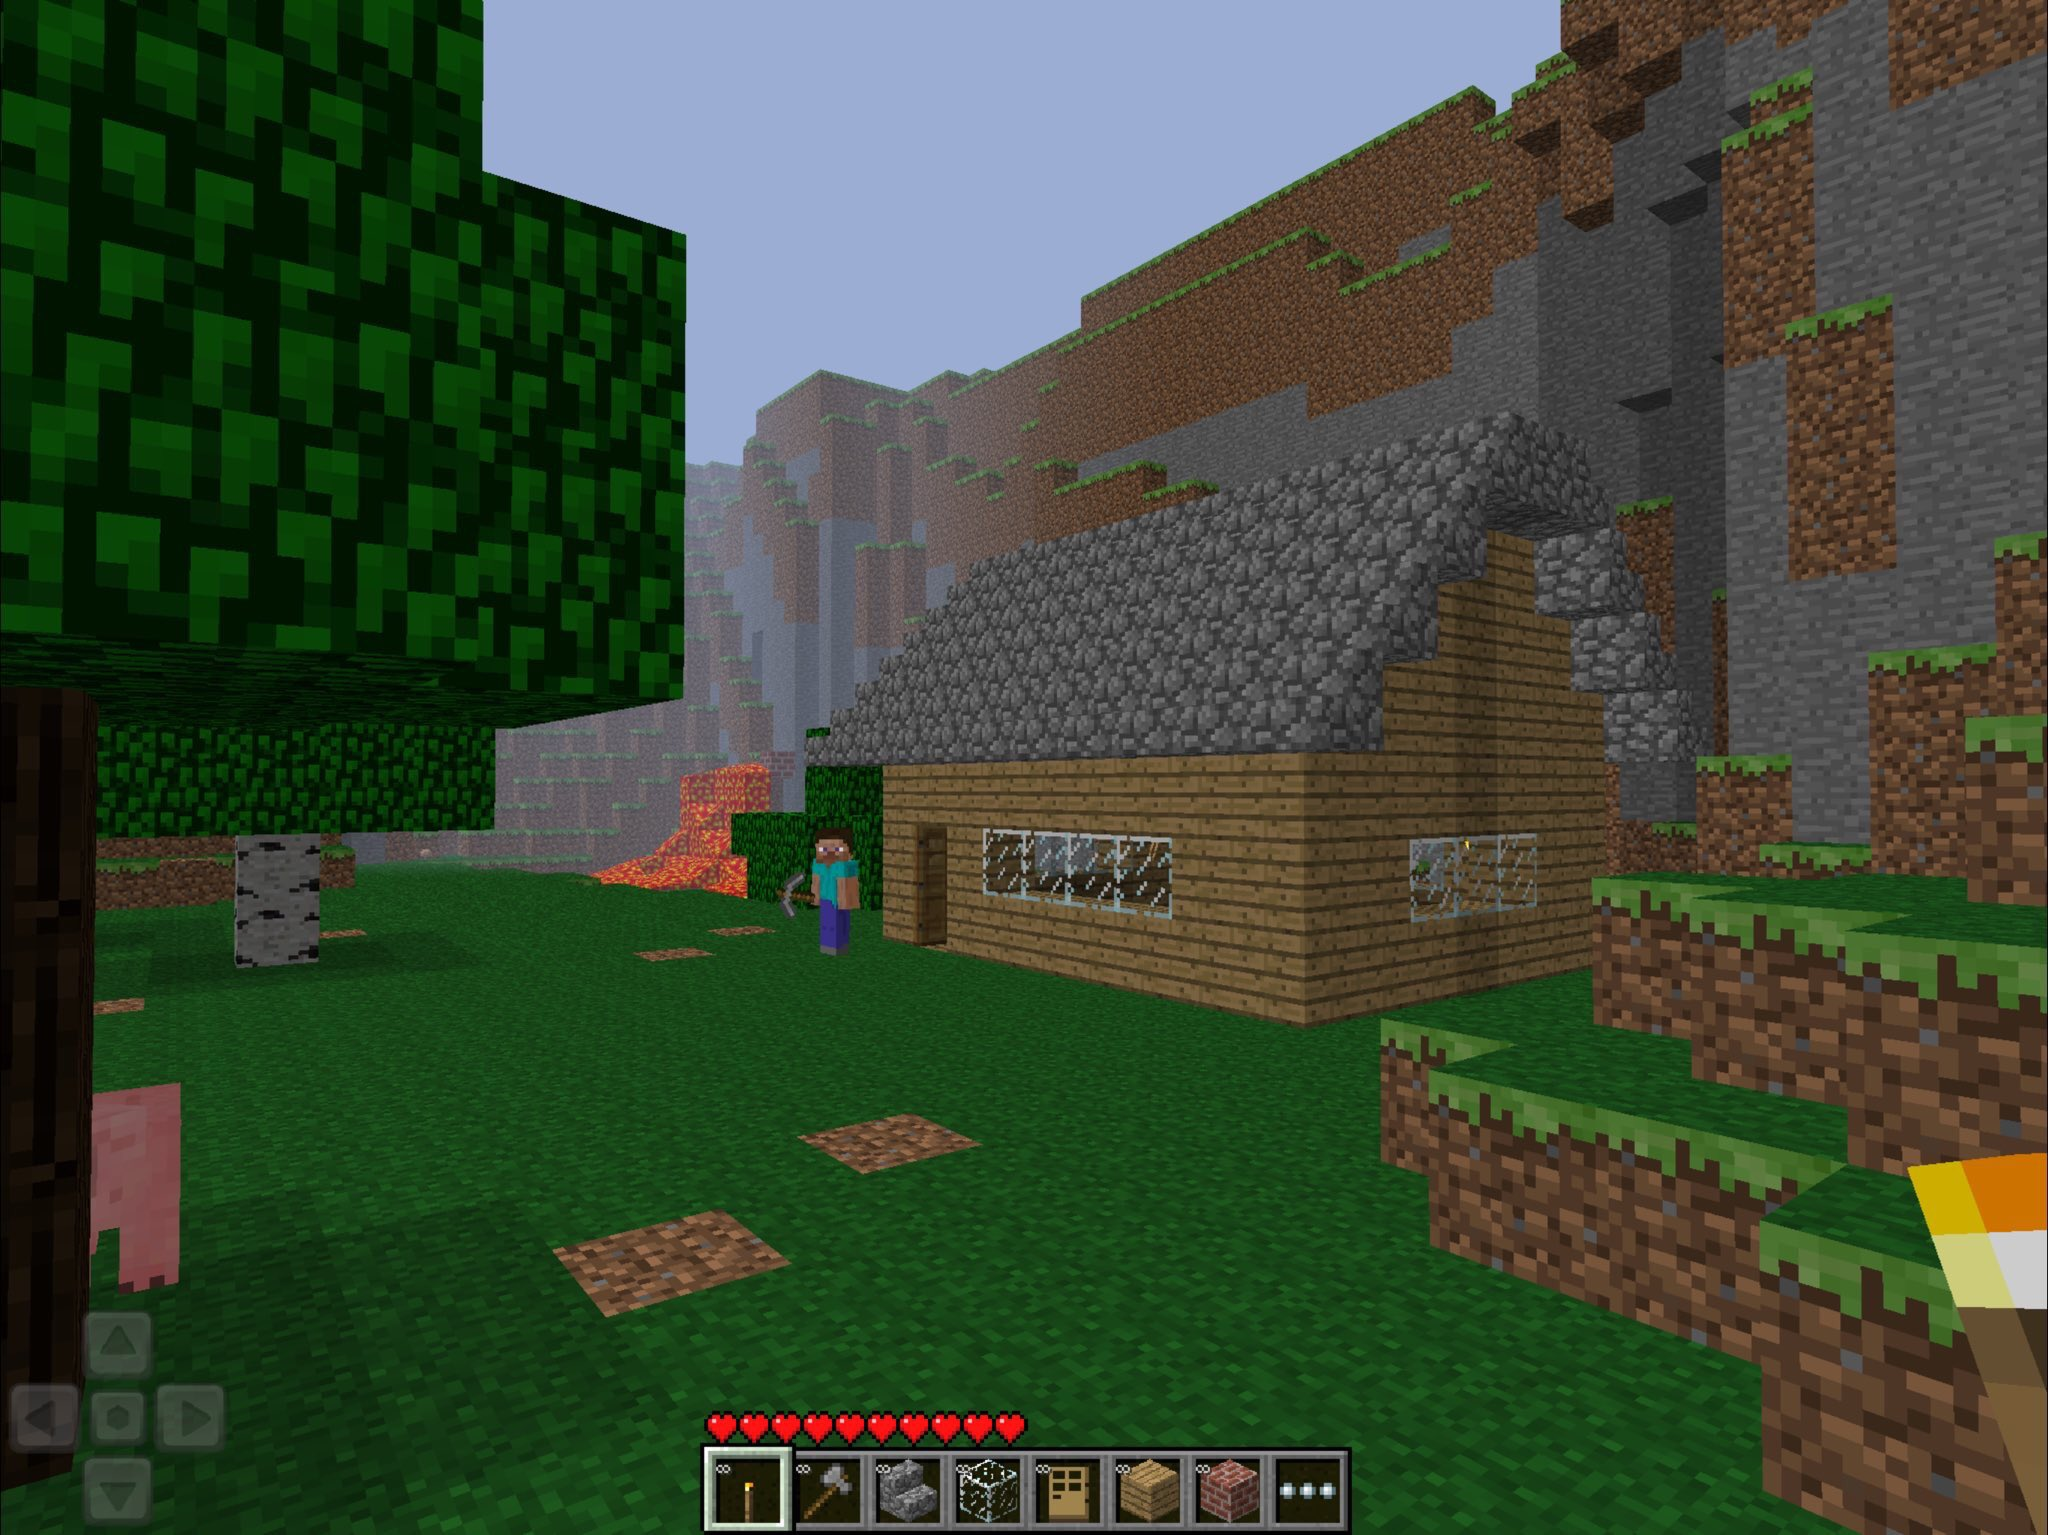 """Minecraft News on Twitter: """"Played the DEMO version of #MCPE today"""